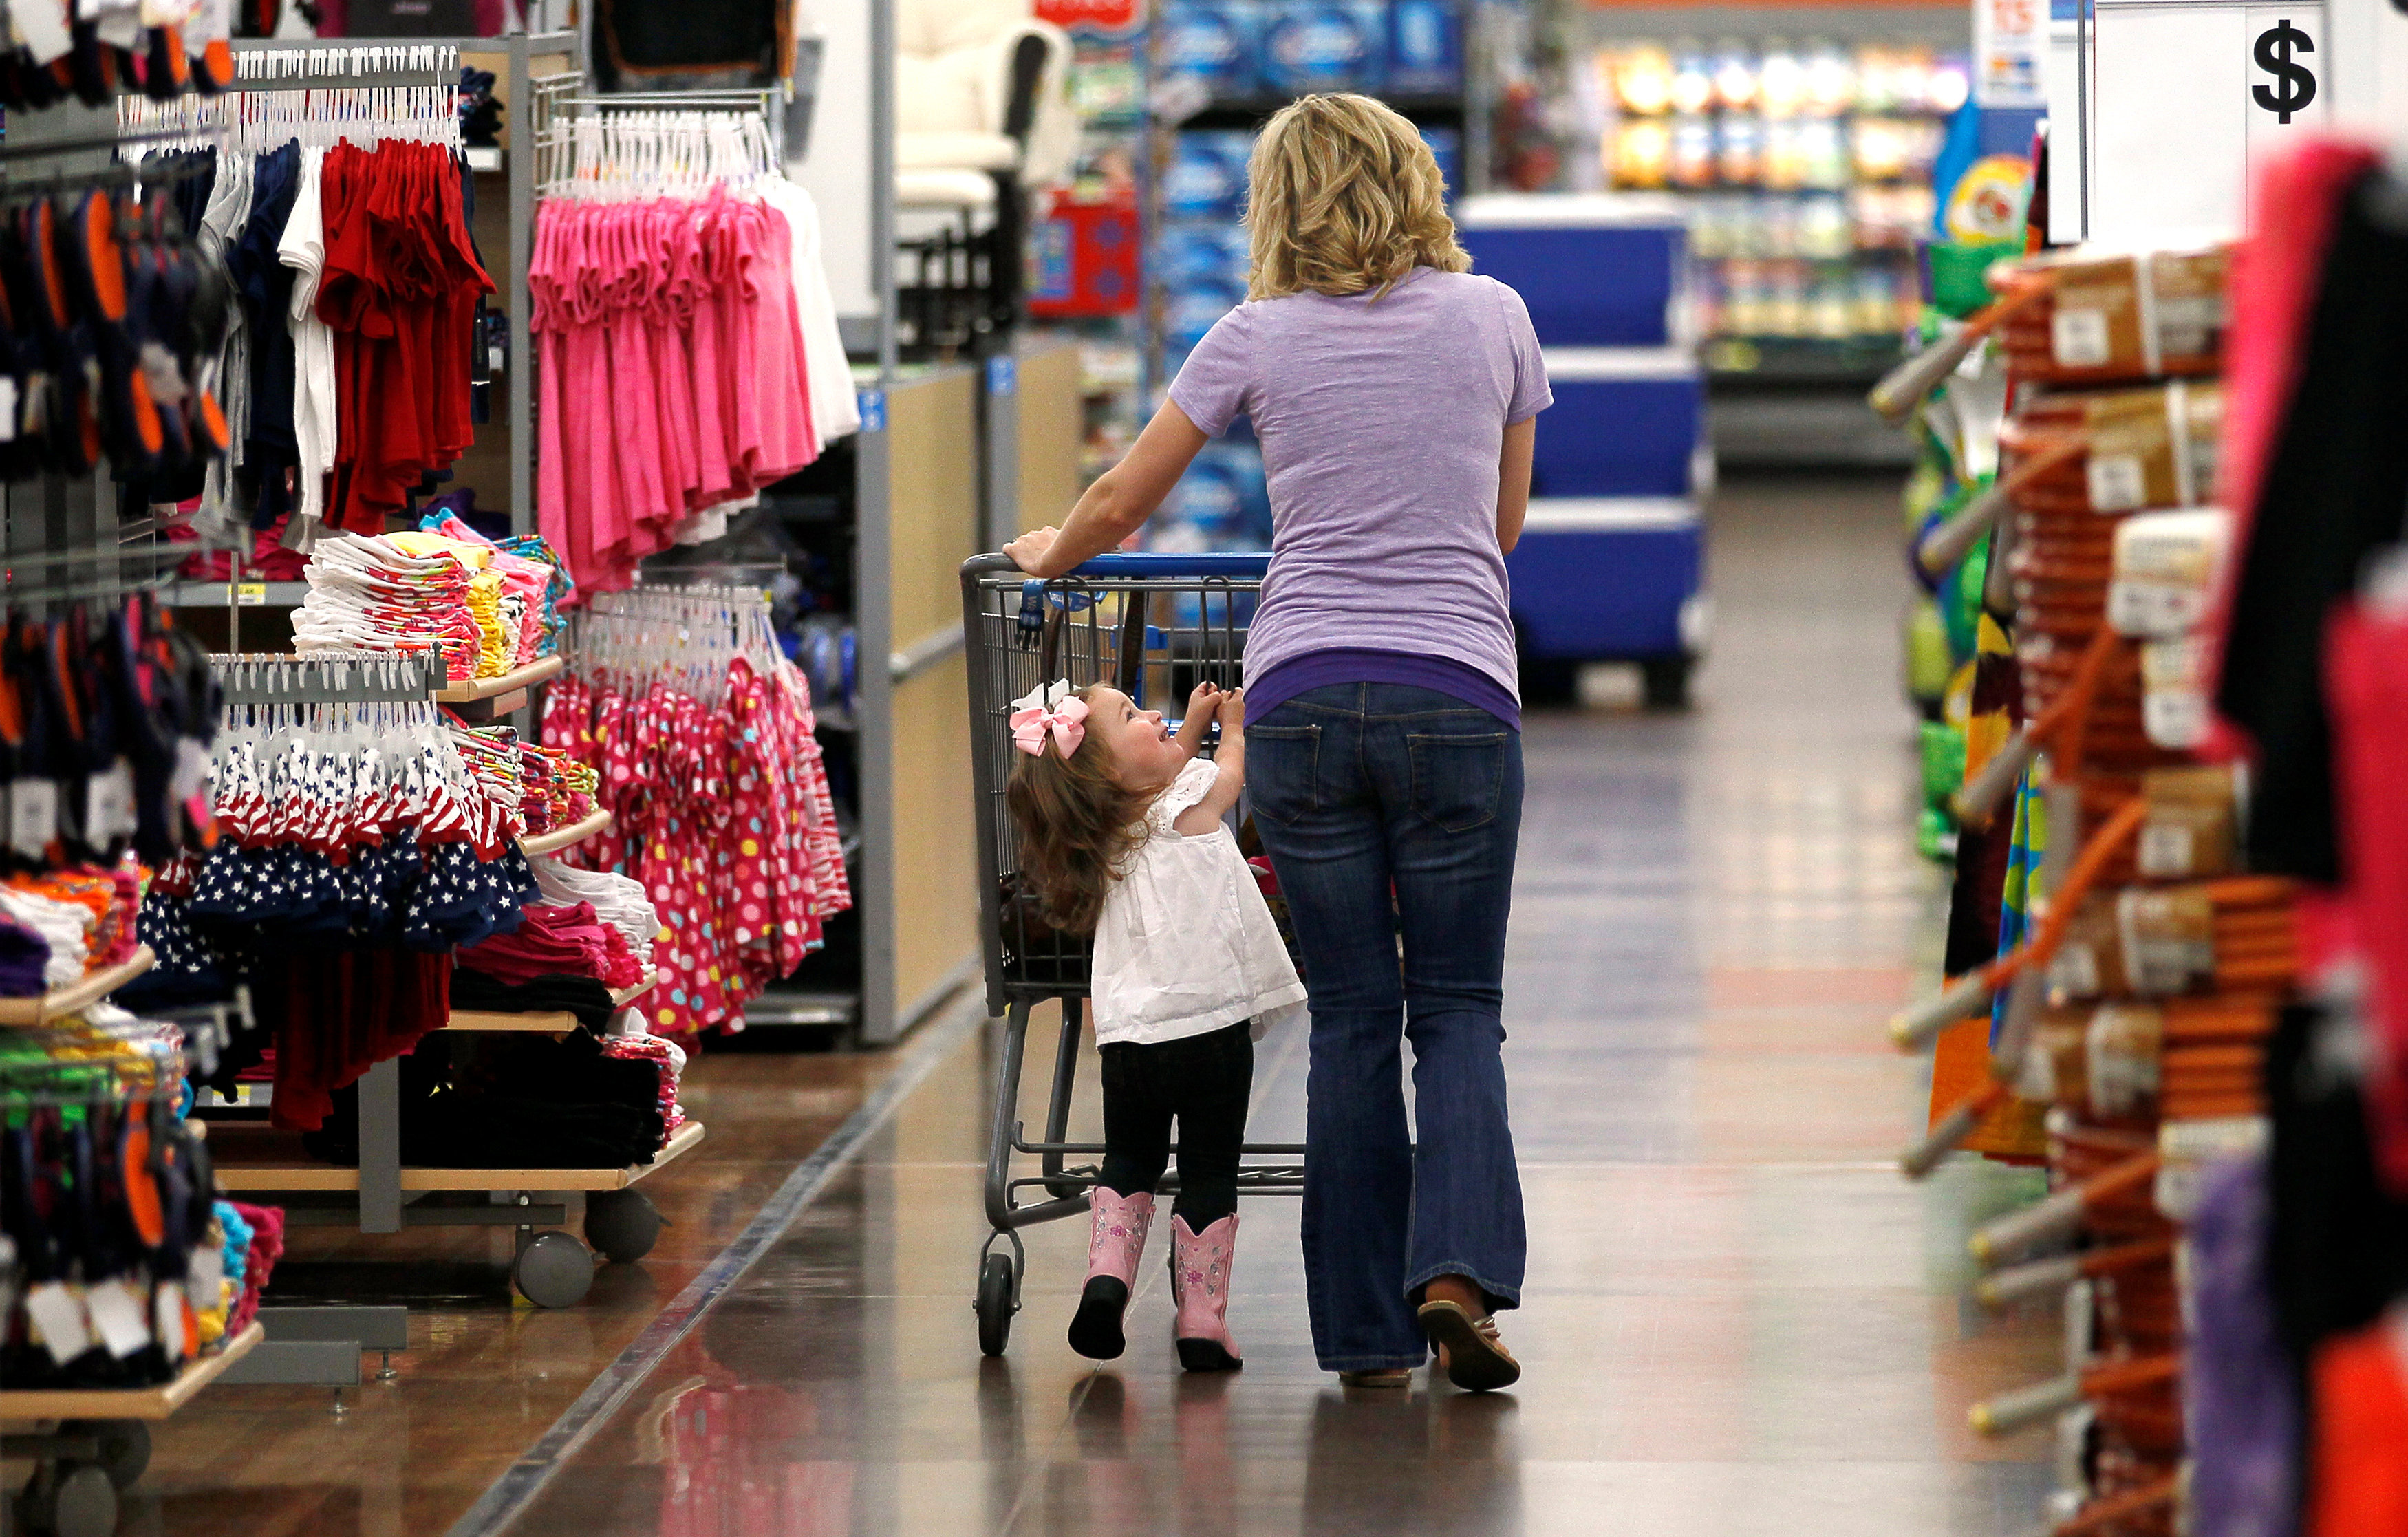 FILE PHOTO: A woman shops with her daughter at a Walmart Supercenter in Rogers, Arkansas, U.S., June 6, 2013. REUTERS/Rick Wilking/File Phot